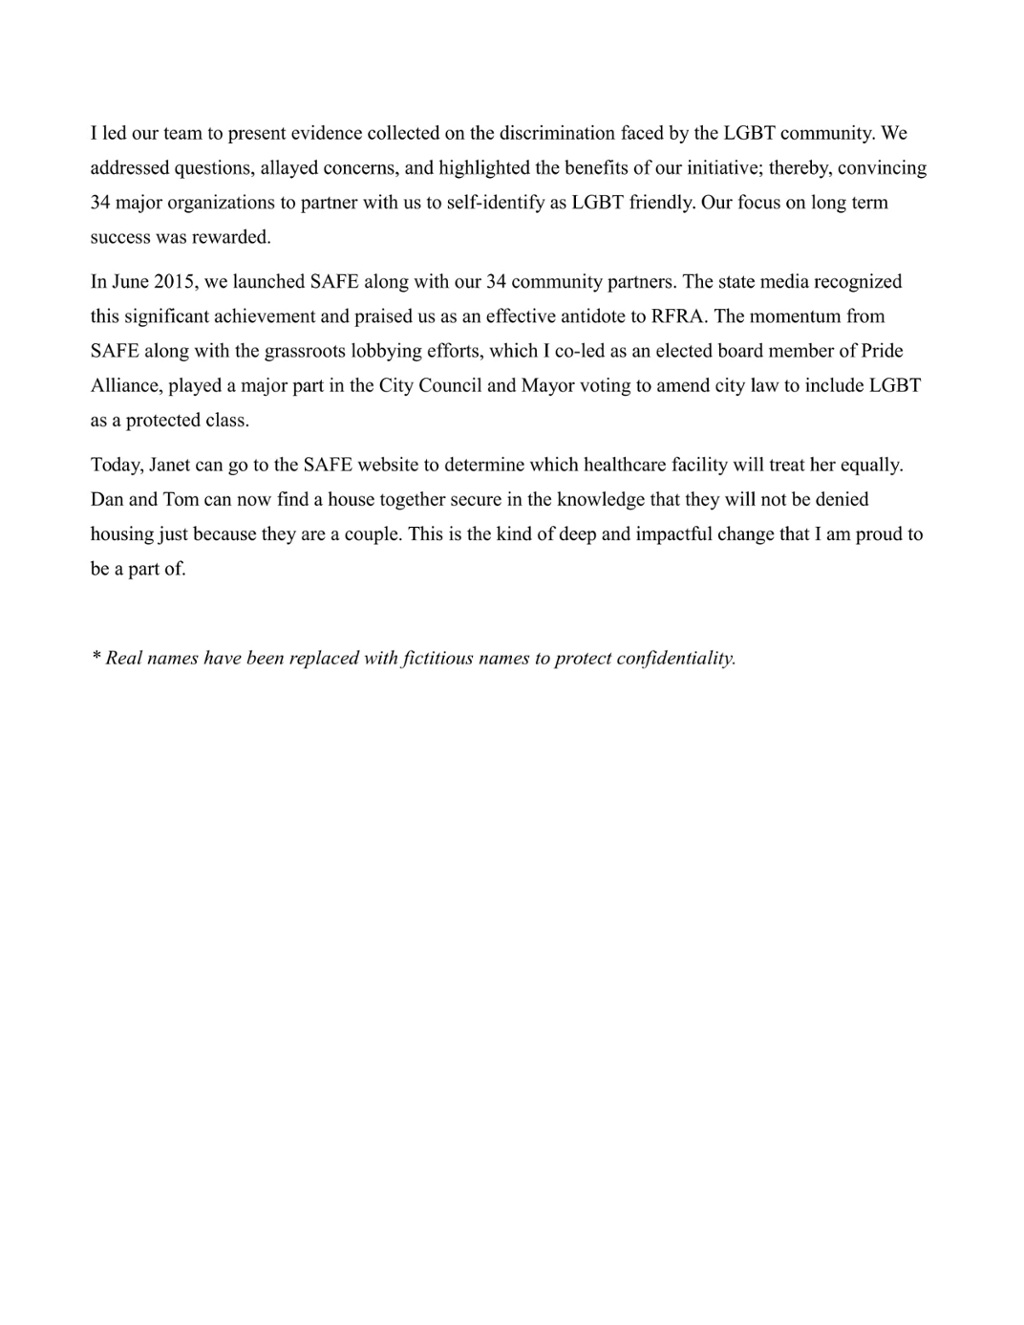 Example Of English Essay  Mba Admissions Essays That Worked  Applying To Business School  Us News English As A Second Language Essay also Healthy Mind In A Healthy Body Essay  Mba Admissions Essays That Worked  Applying To Business School  Science Essay Topics